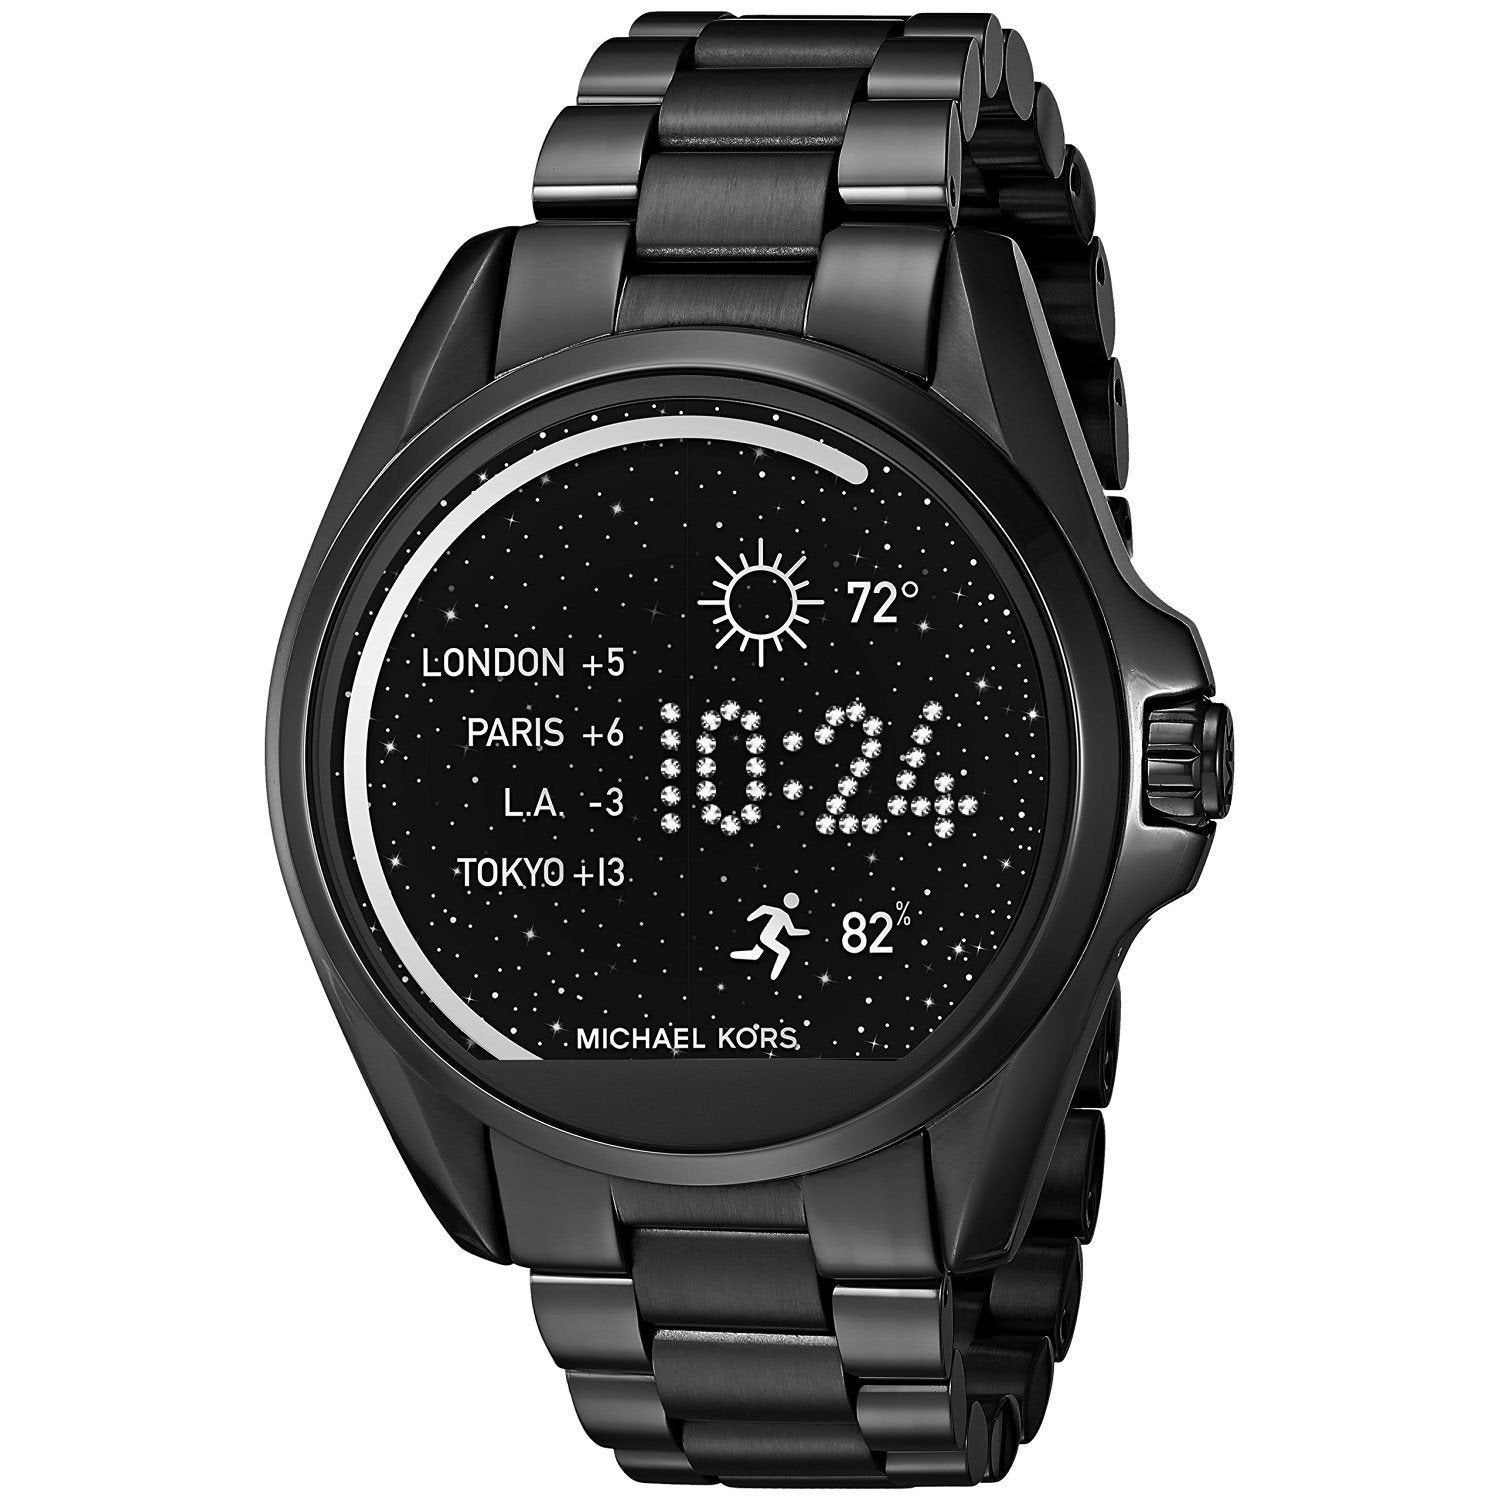 Michael Kors Mens MKT5005 Access Bradshaw Smartwatch Android 4.3+ IOS 8.2+ Bluetooth Touchscreen Black Stainless Steel Watch